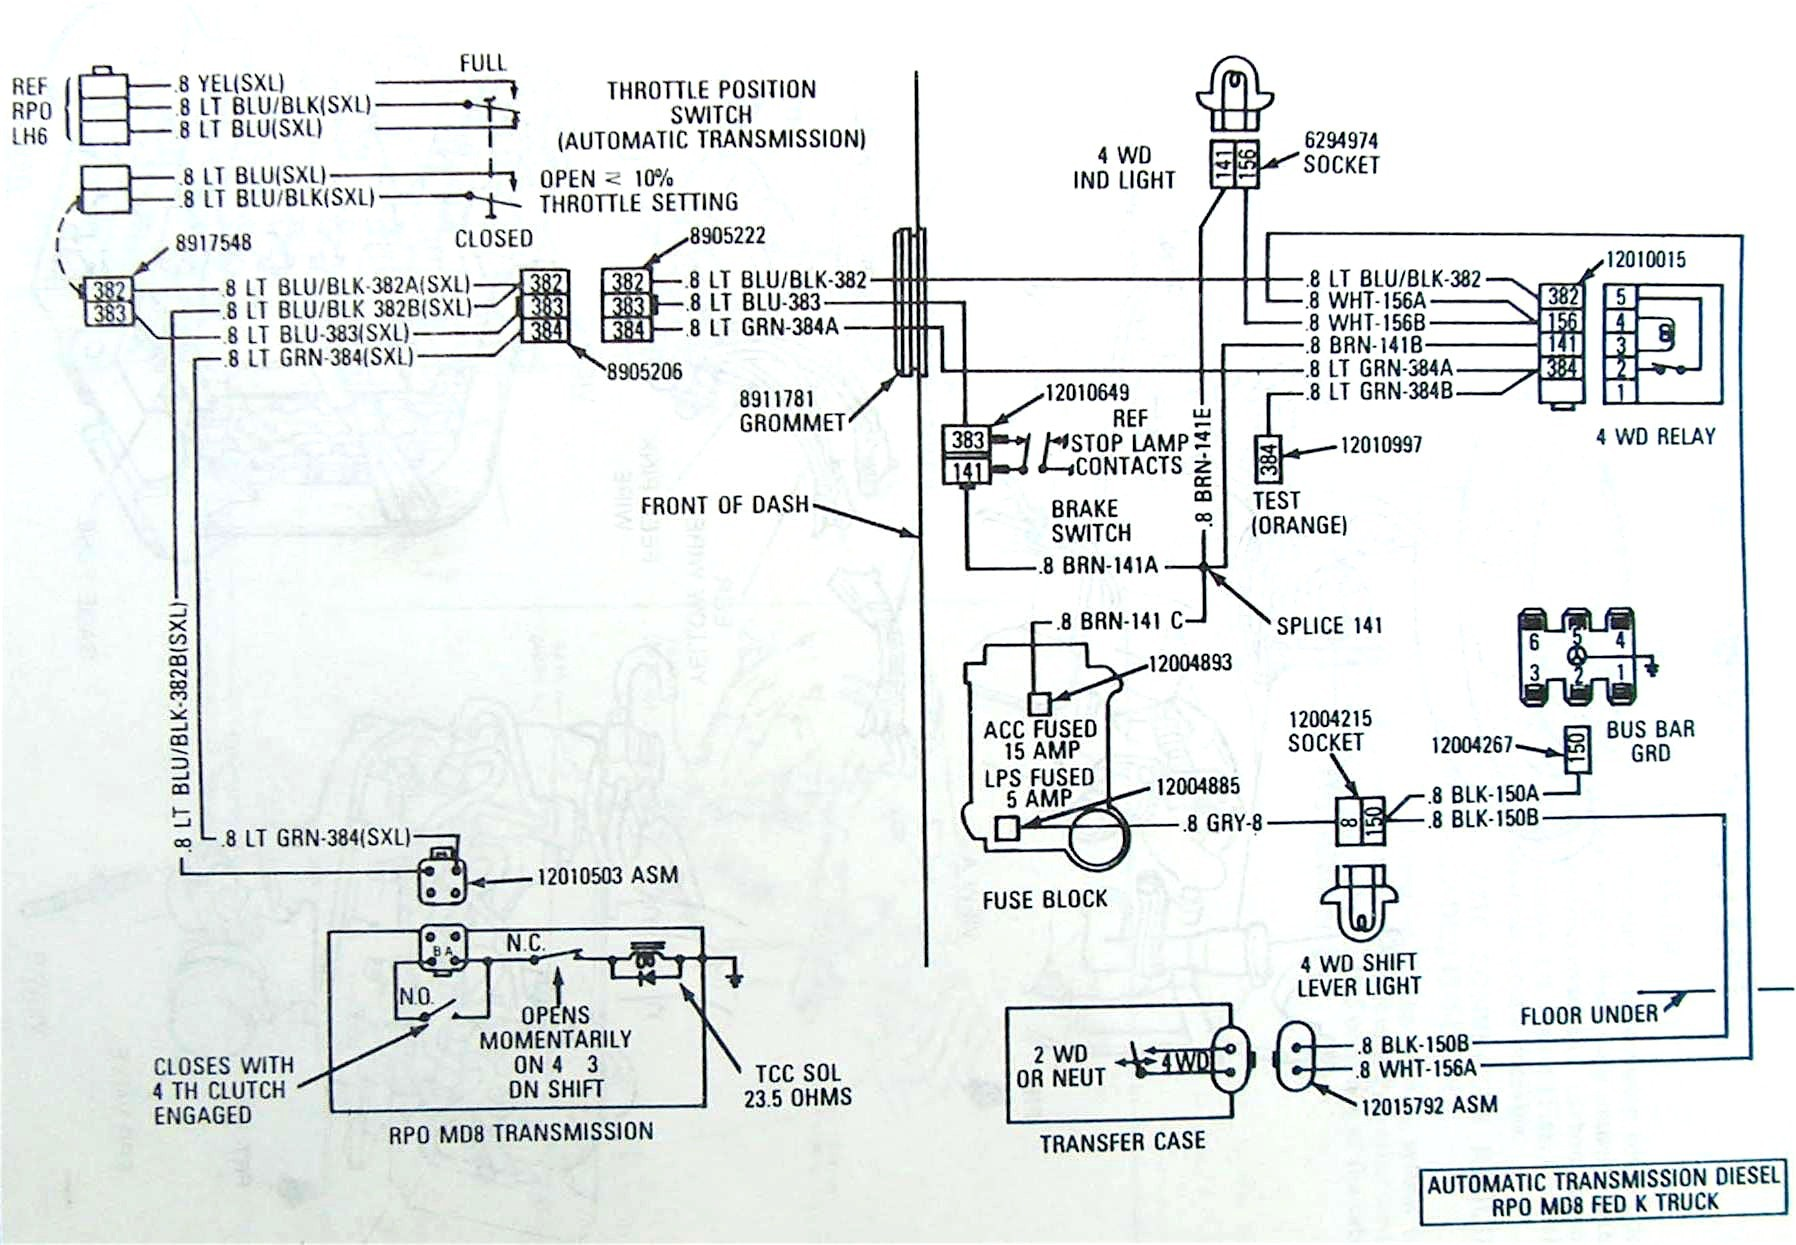 700r4 lock up converter wiring diagram wiring diagram further 700r4 lockup wiring diagram for  further 700r4 lockup wiring diagram